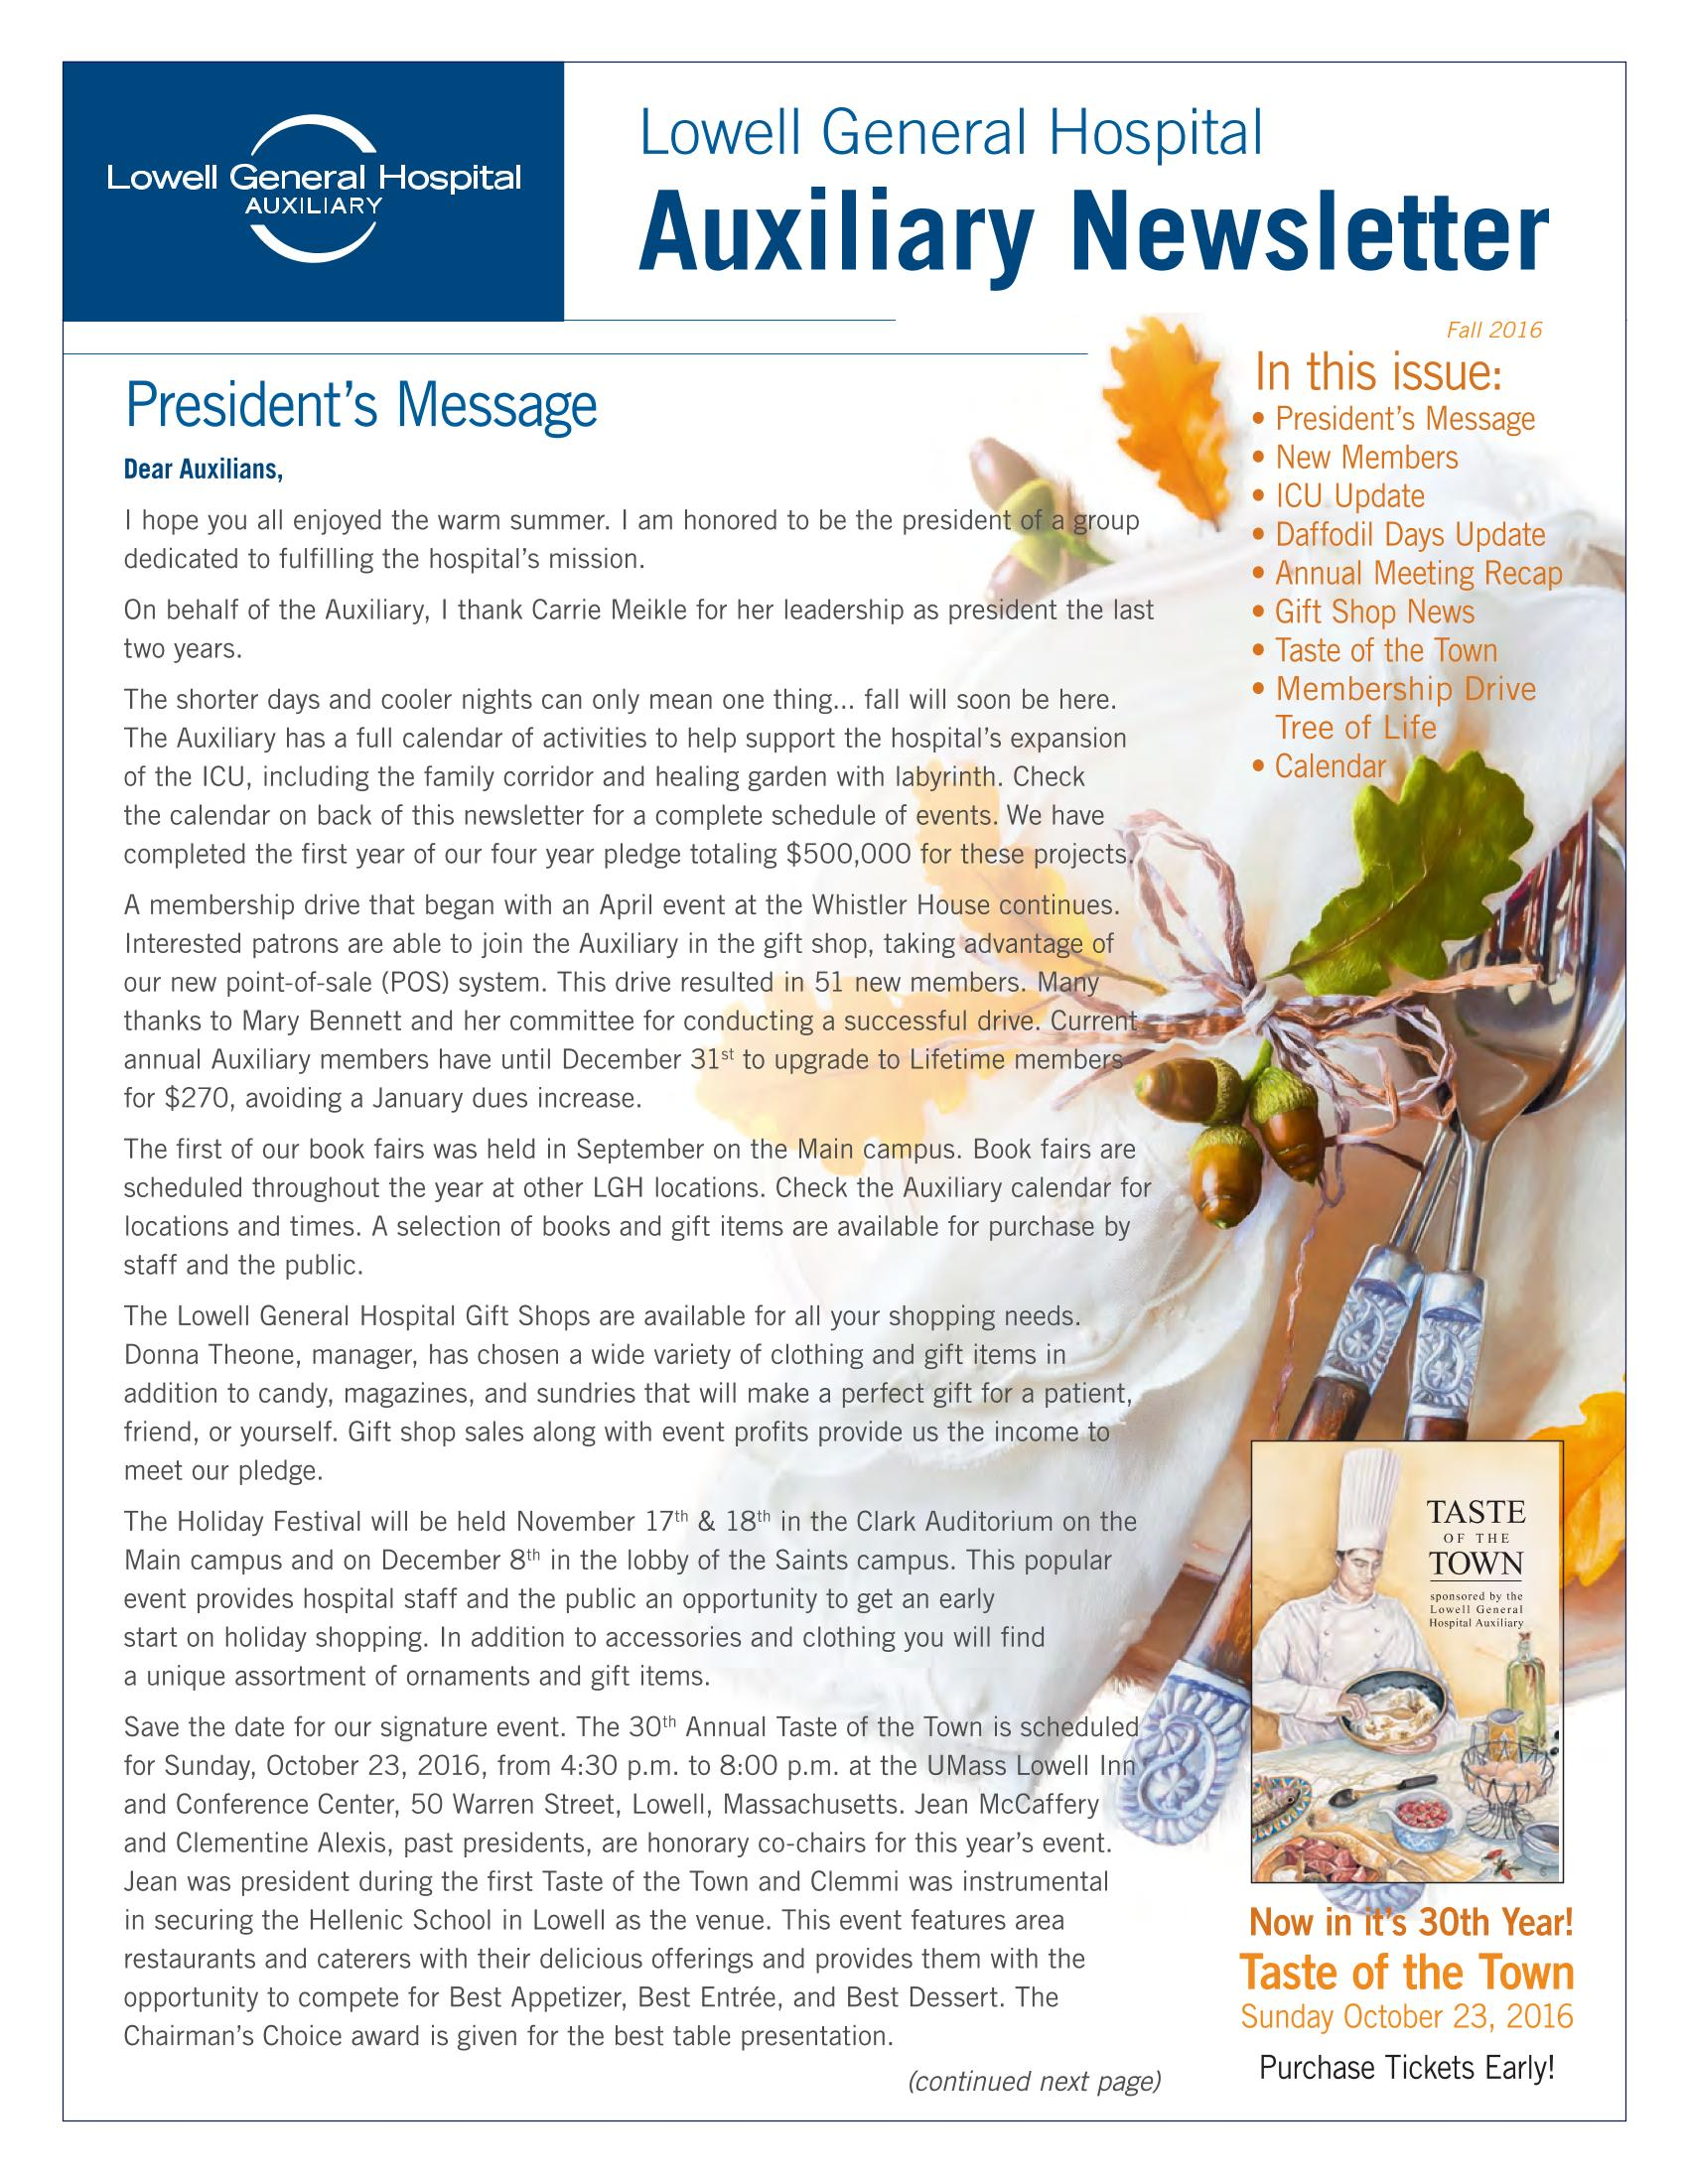 Fall 2016 Auxiliary Newsletter